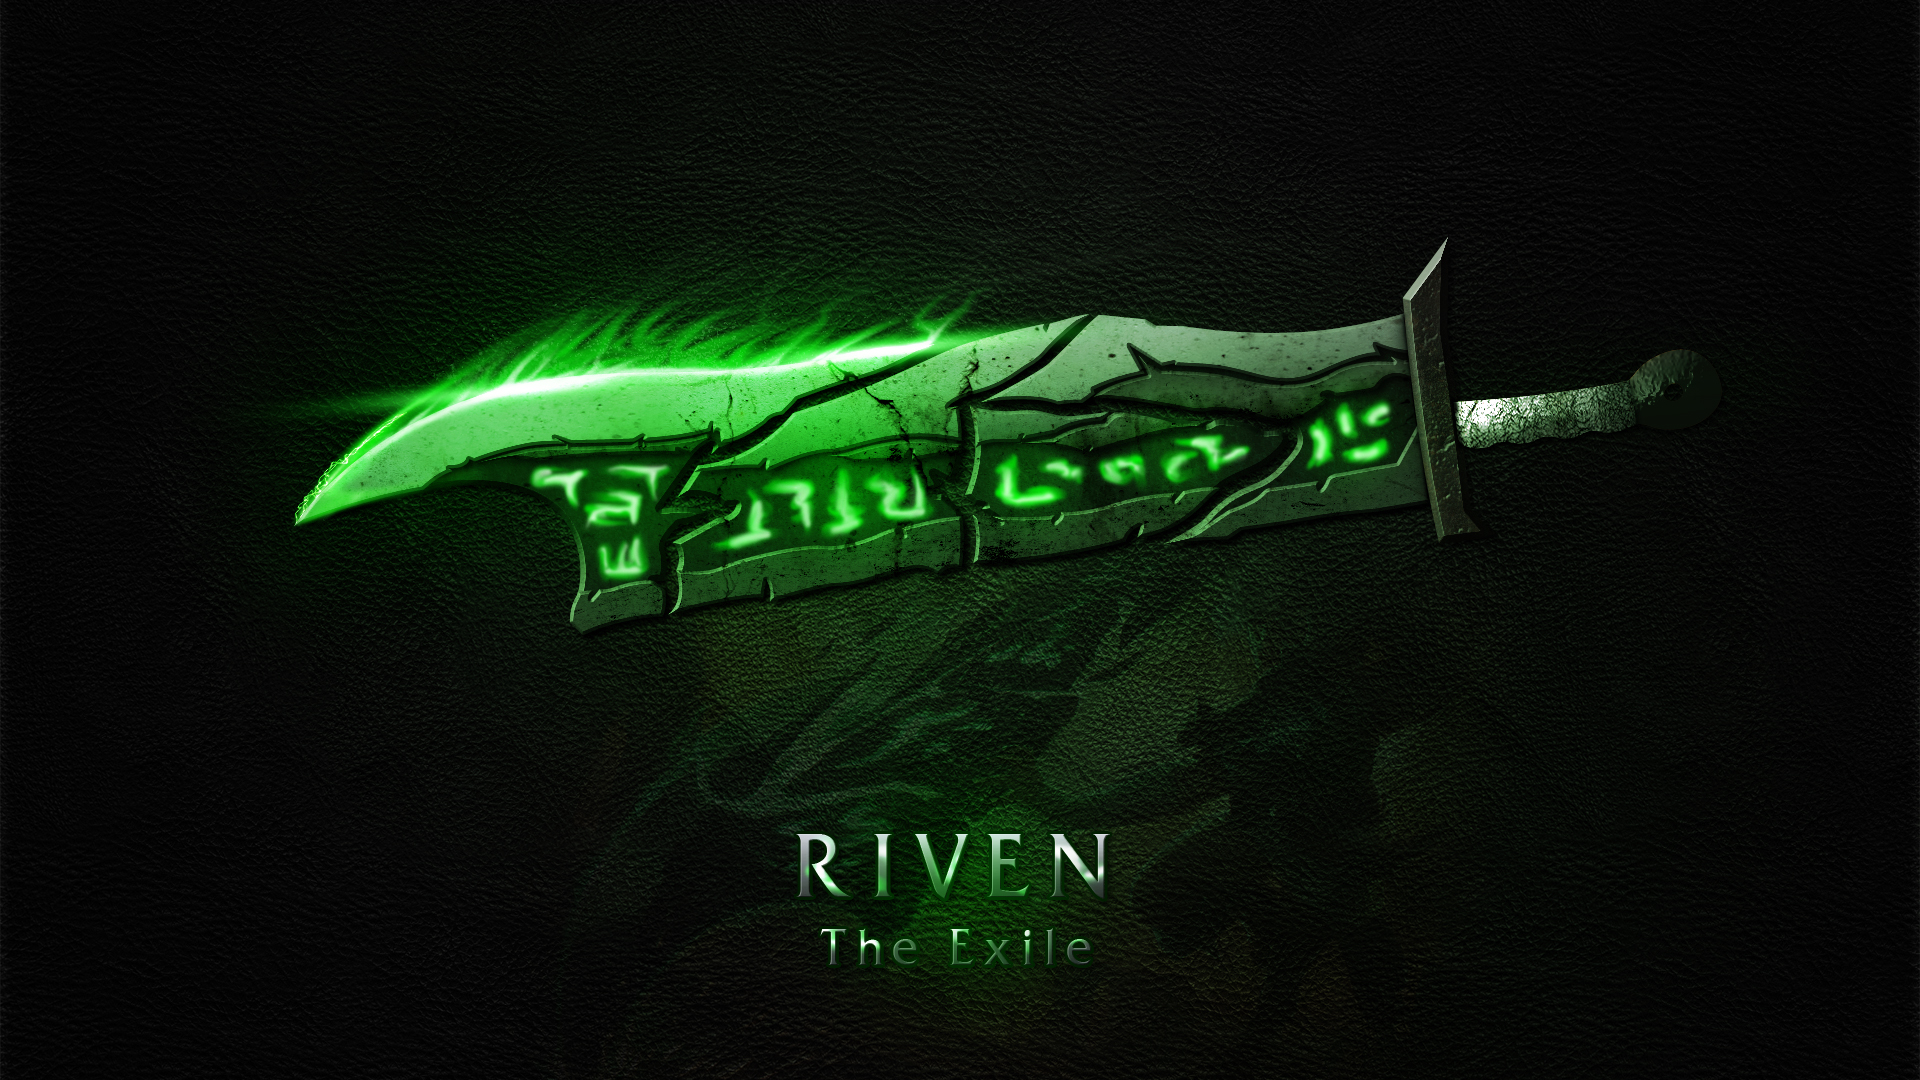 Riven League Of Legends Wallpapers HD 1920x1080